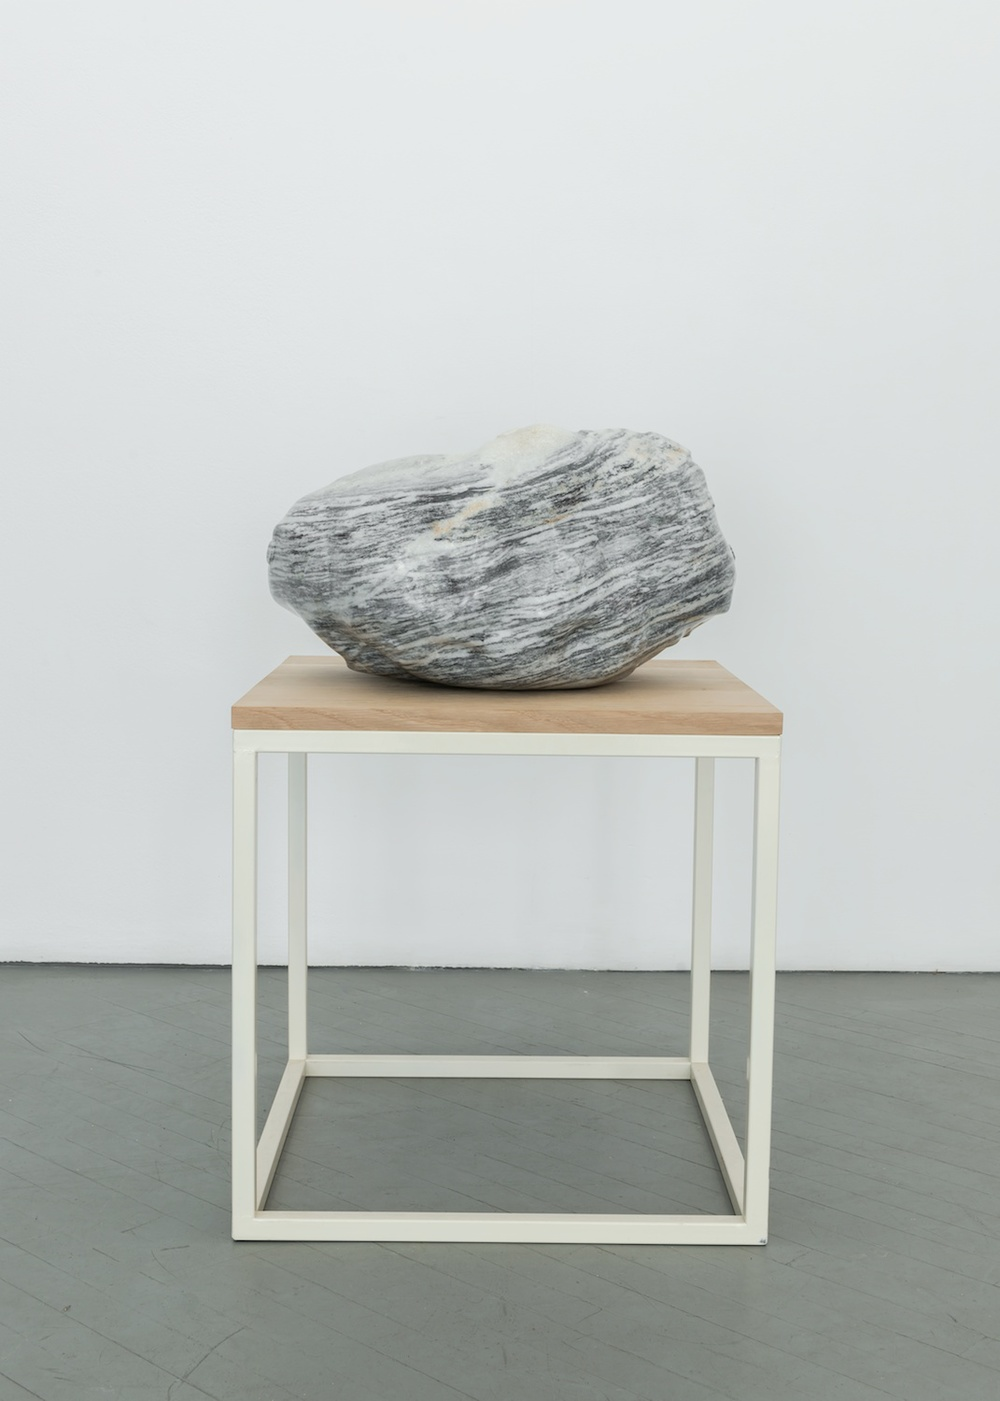 "Alma Allen Untitled  2013 Marble on oak and powder-coated steel pedestal 37"" x 16"" x 16"" AA008"